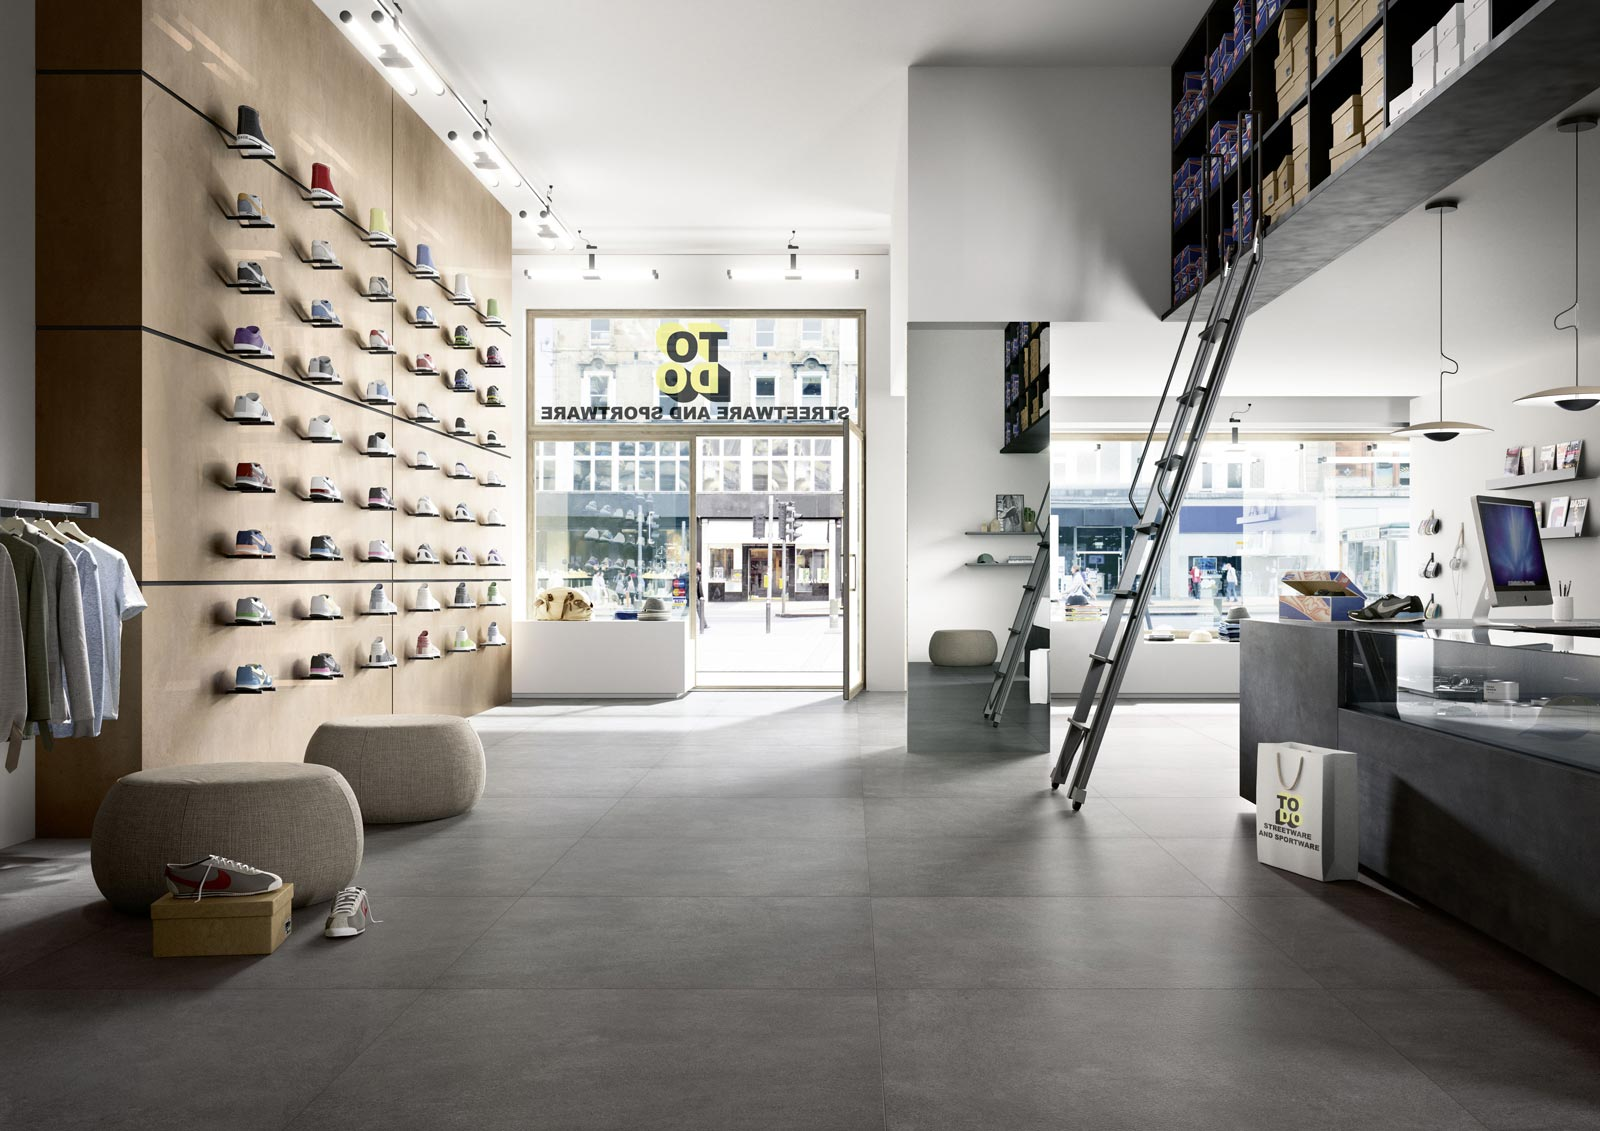 Xlstone stone effect stoneware in shops and spas marazzi for Carrelage 120x120